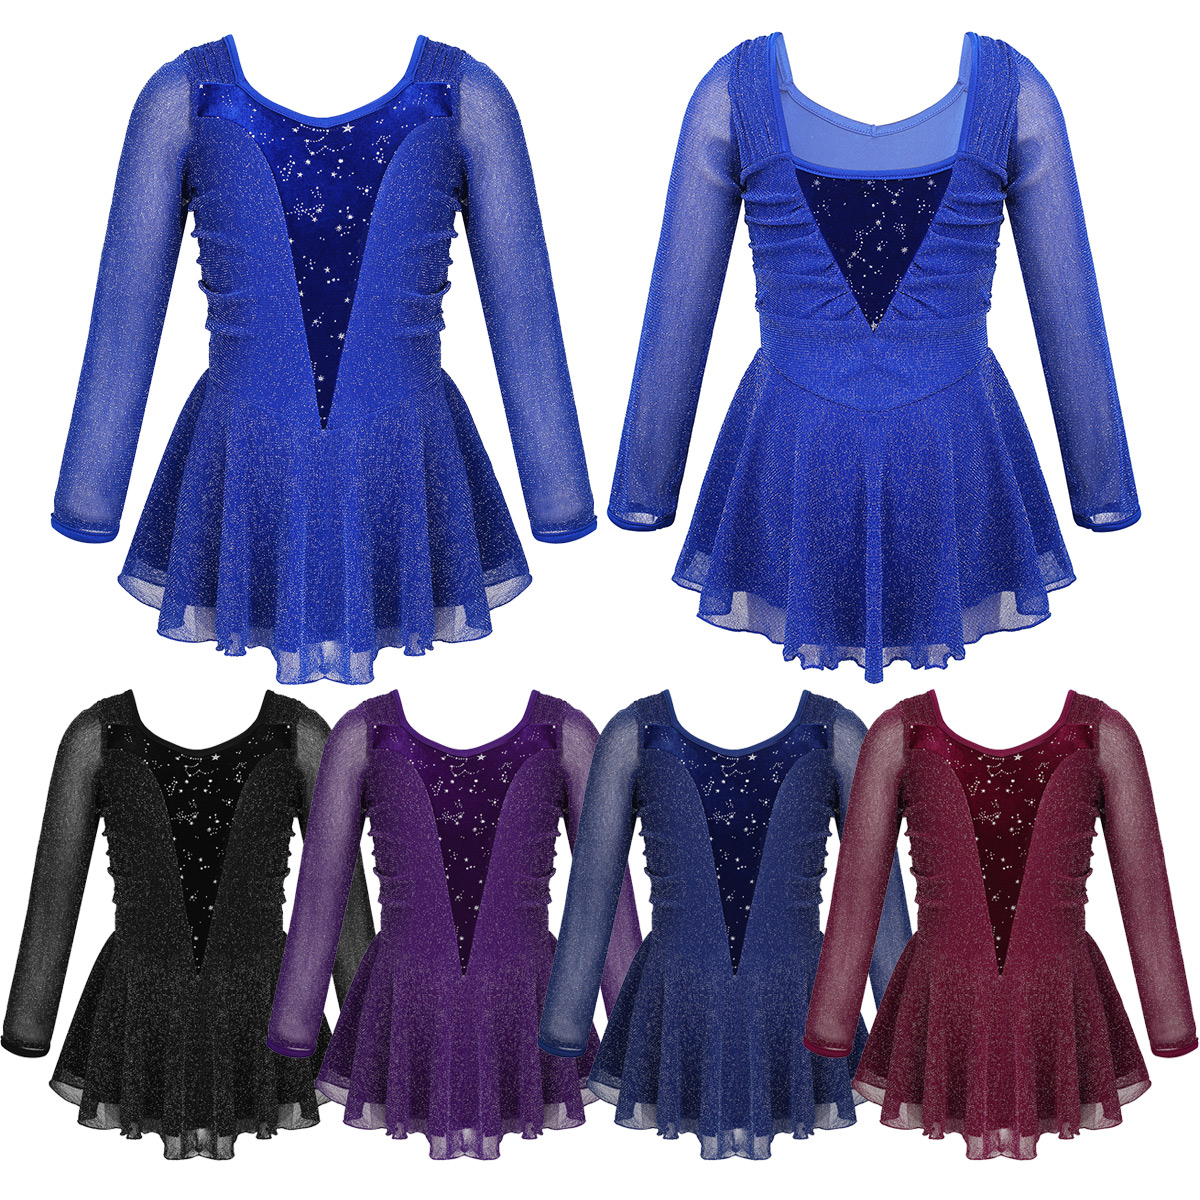 Kids Girls Shiny Stretchy Velvet Roller Ice Skating Dress Figure Skating Dress Tutu Dance Wear Gymnastics Leotard Costumes